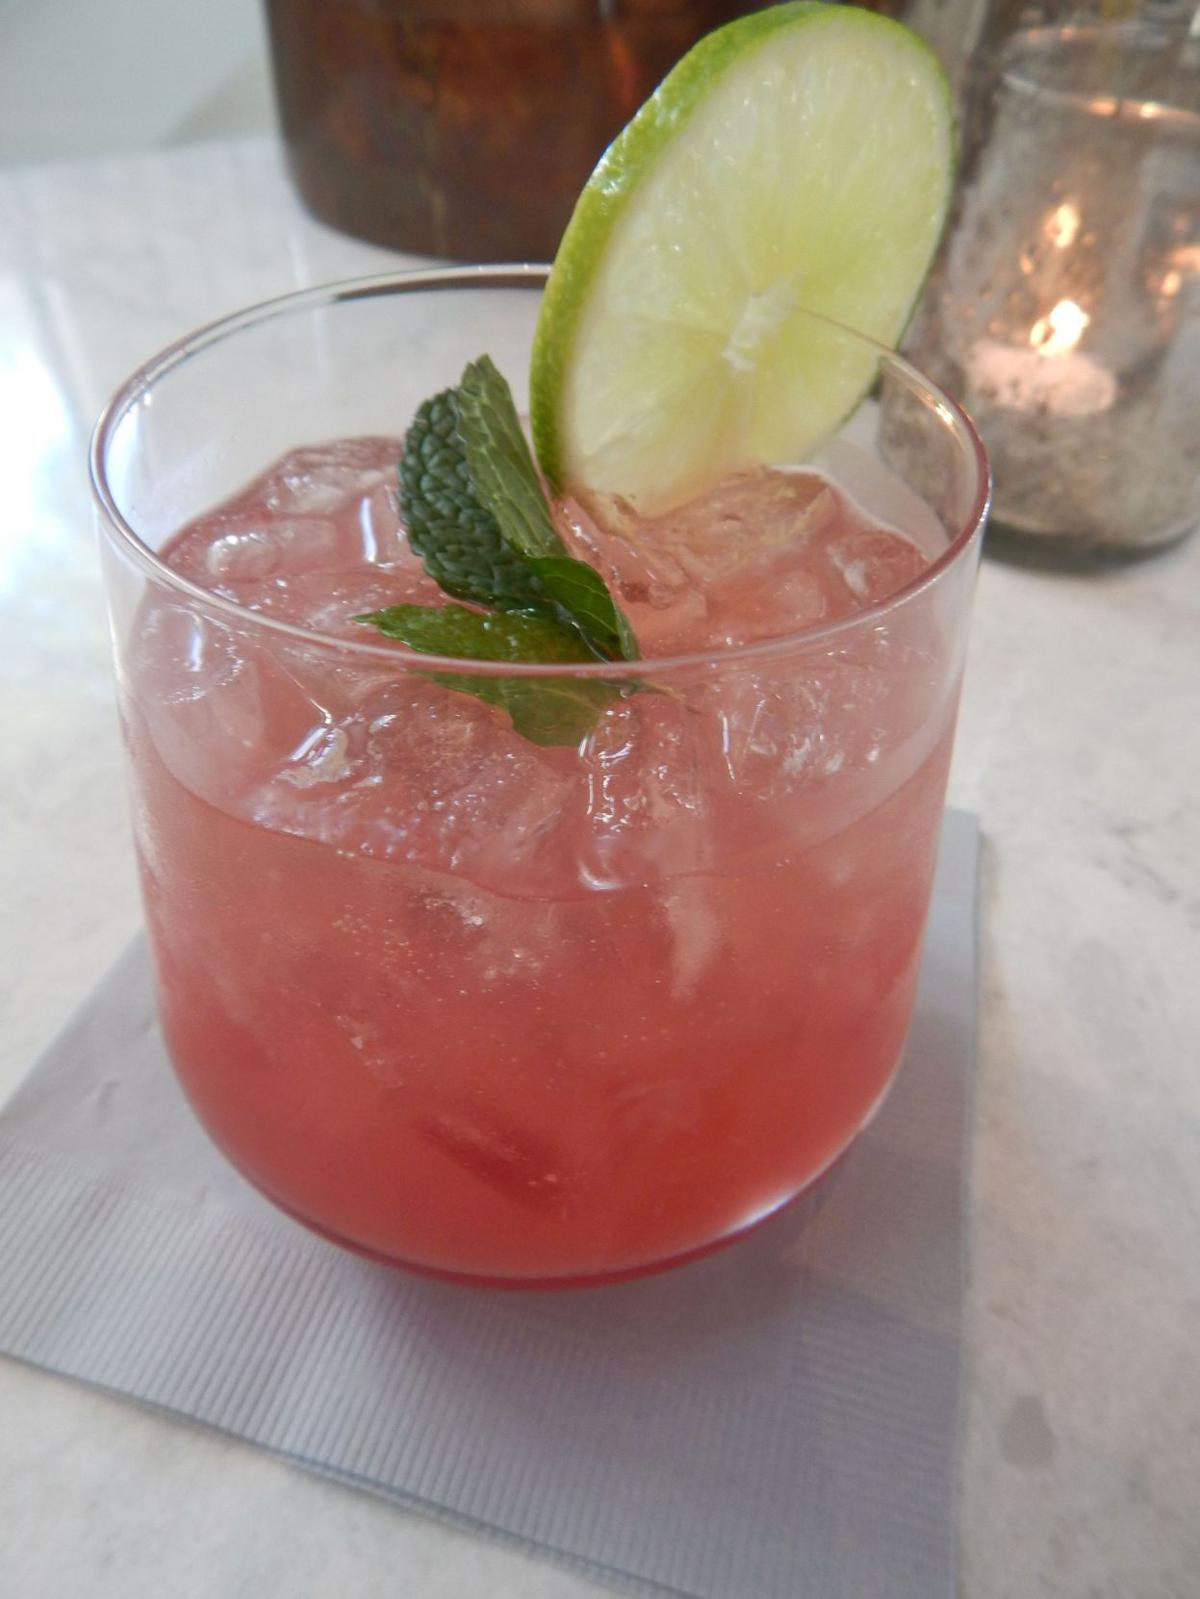 Cannon Green mixologist concocts refreshing watermelon cocktail with a kick